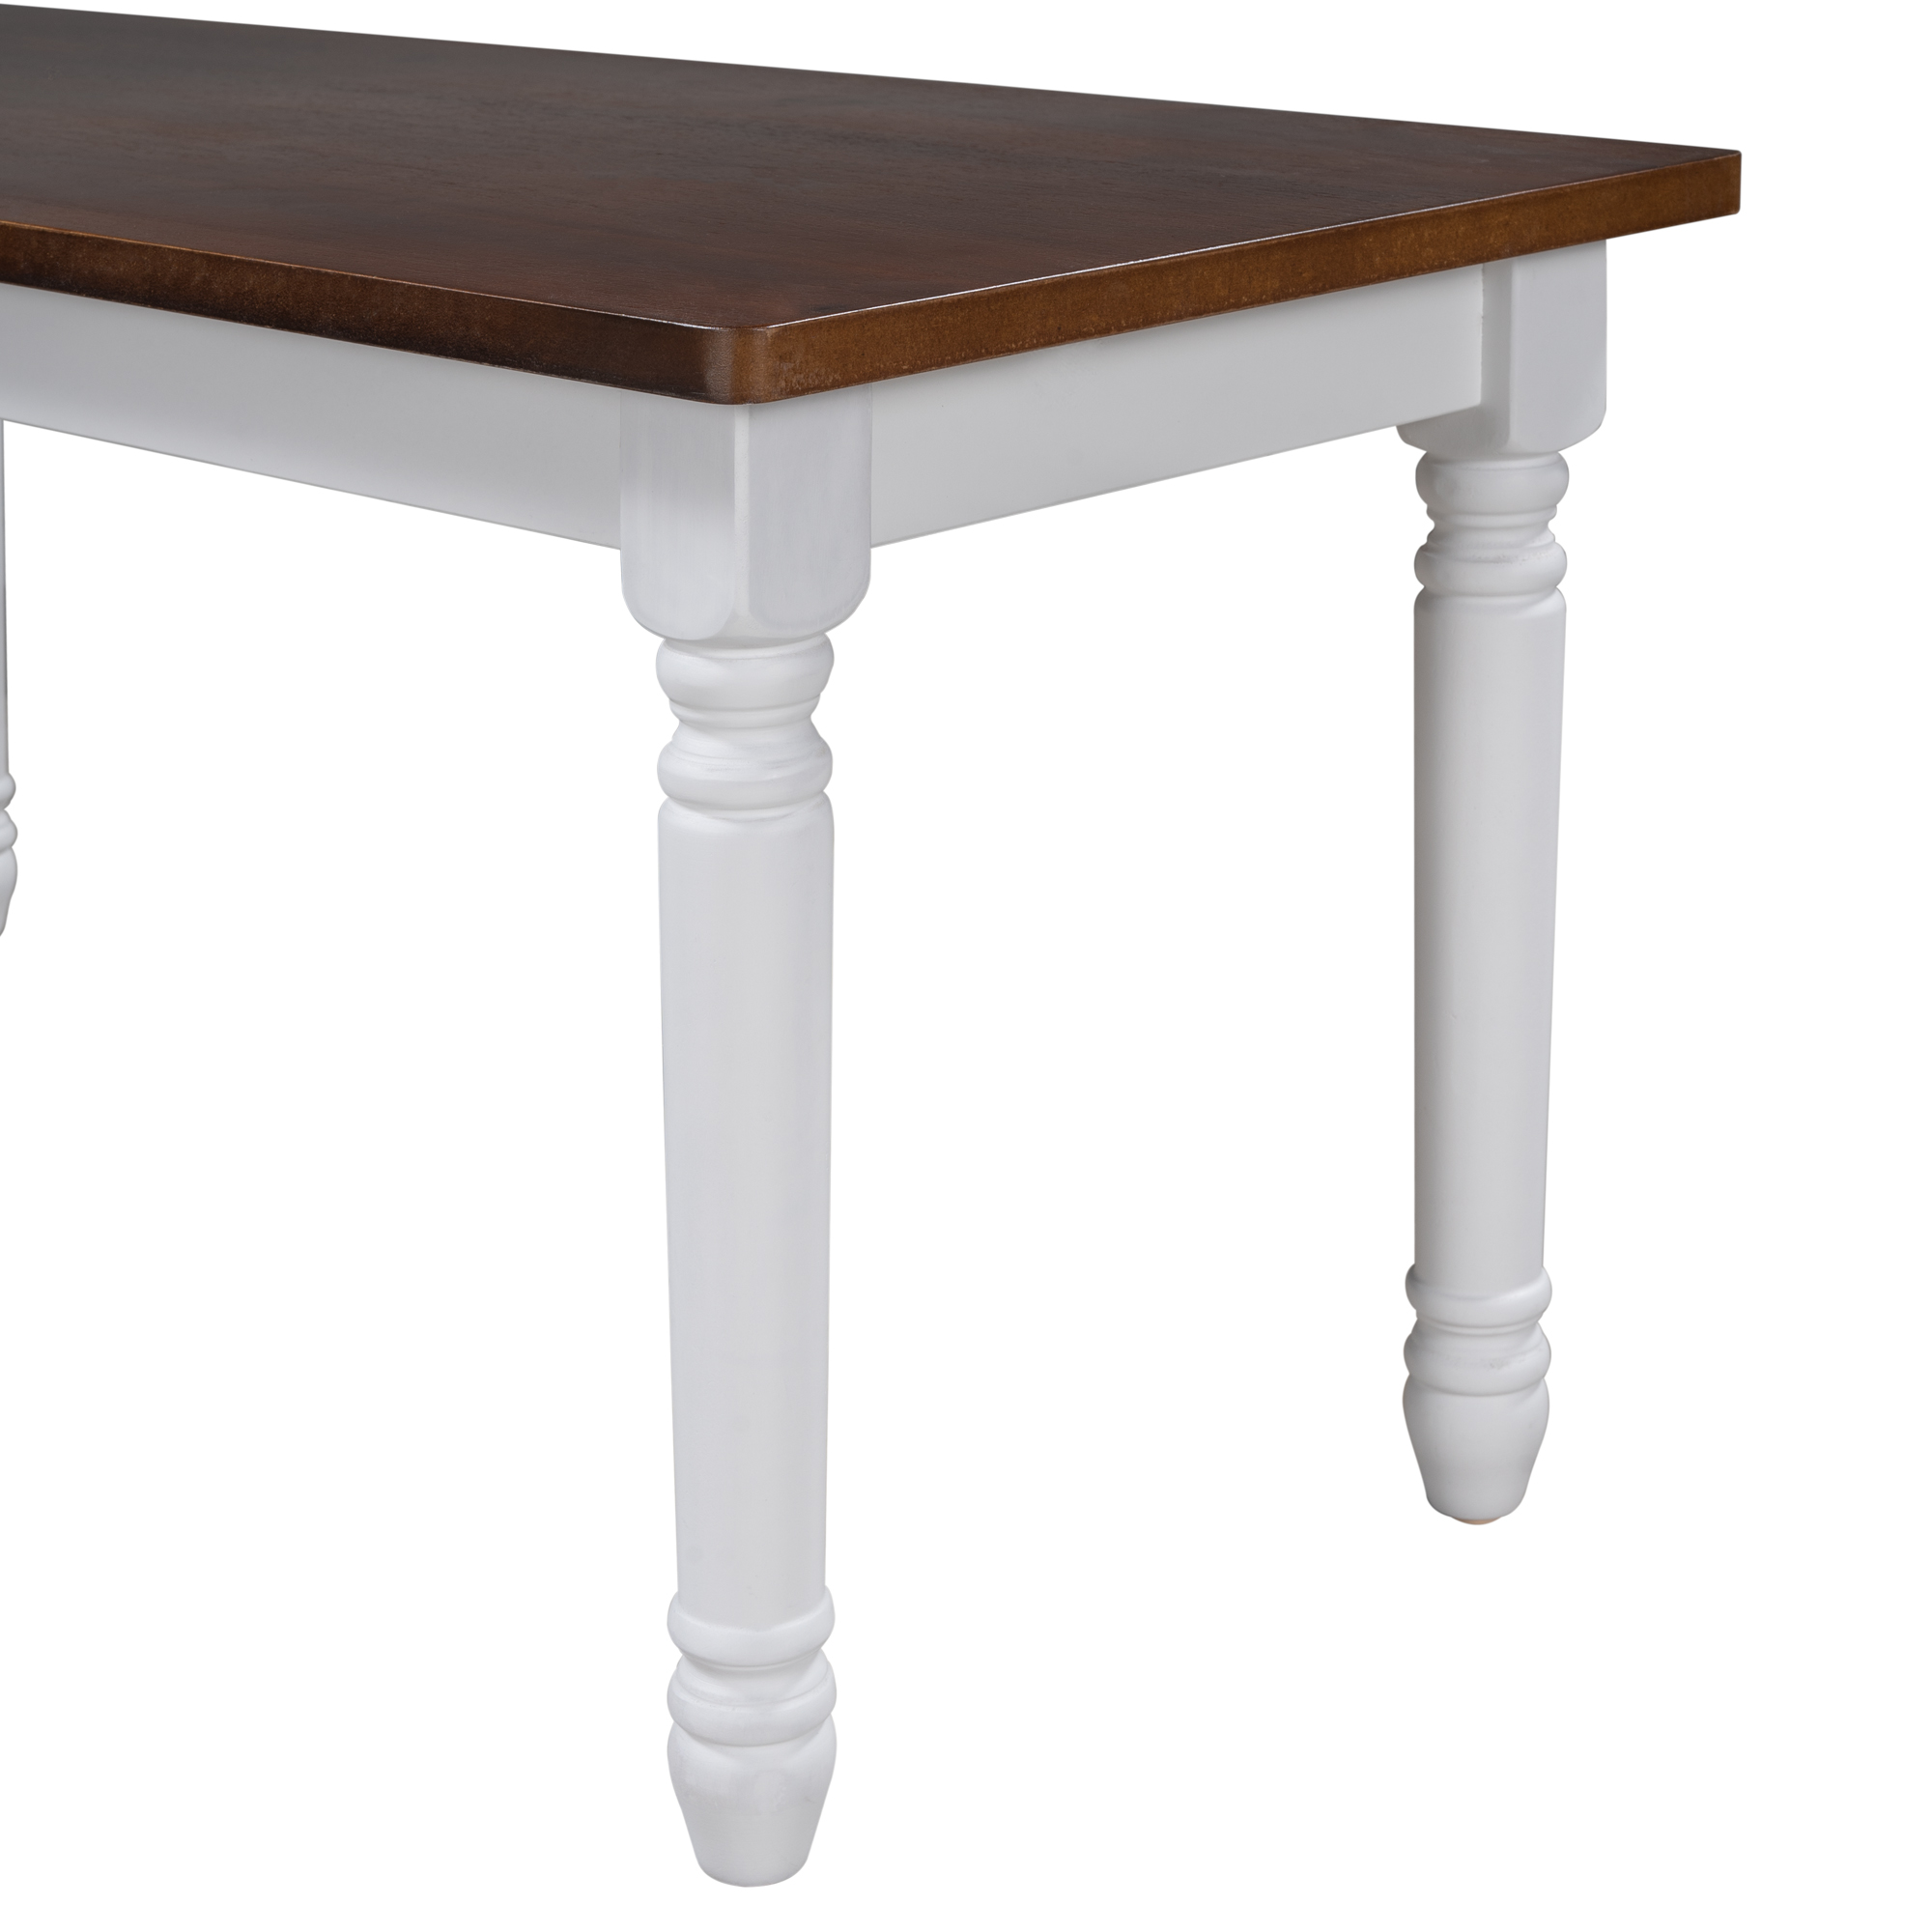 2-Piece Solid Wood Kitchen Dining Benches Set